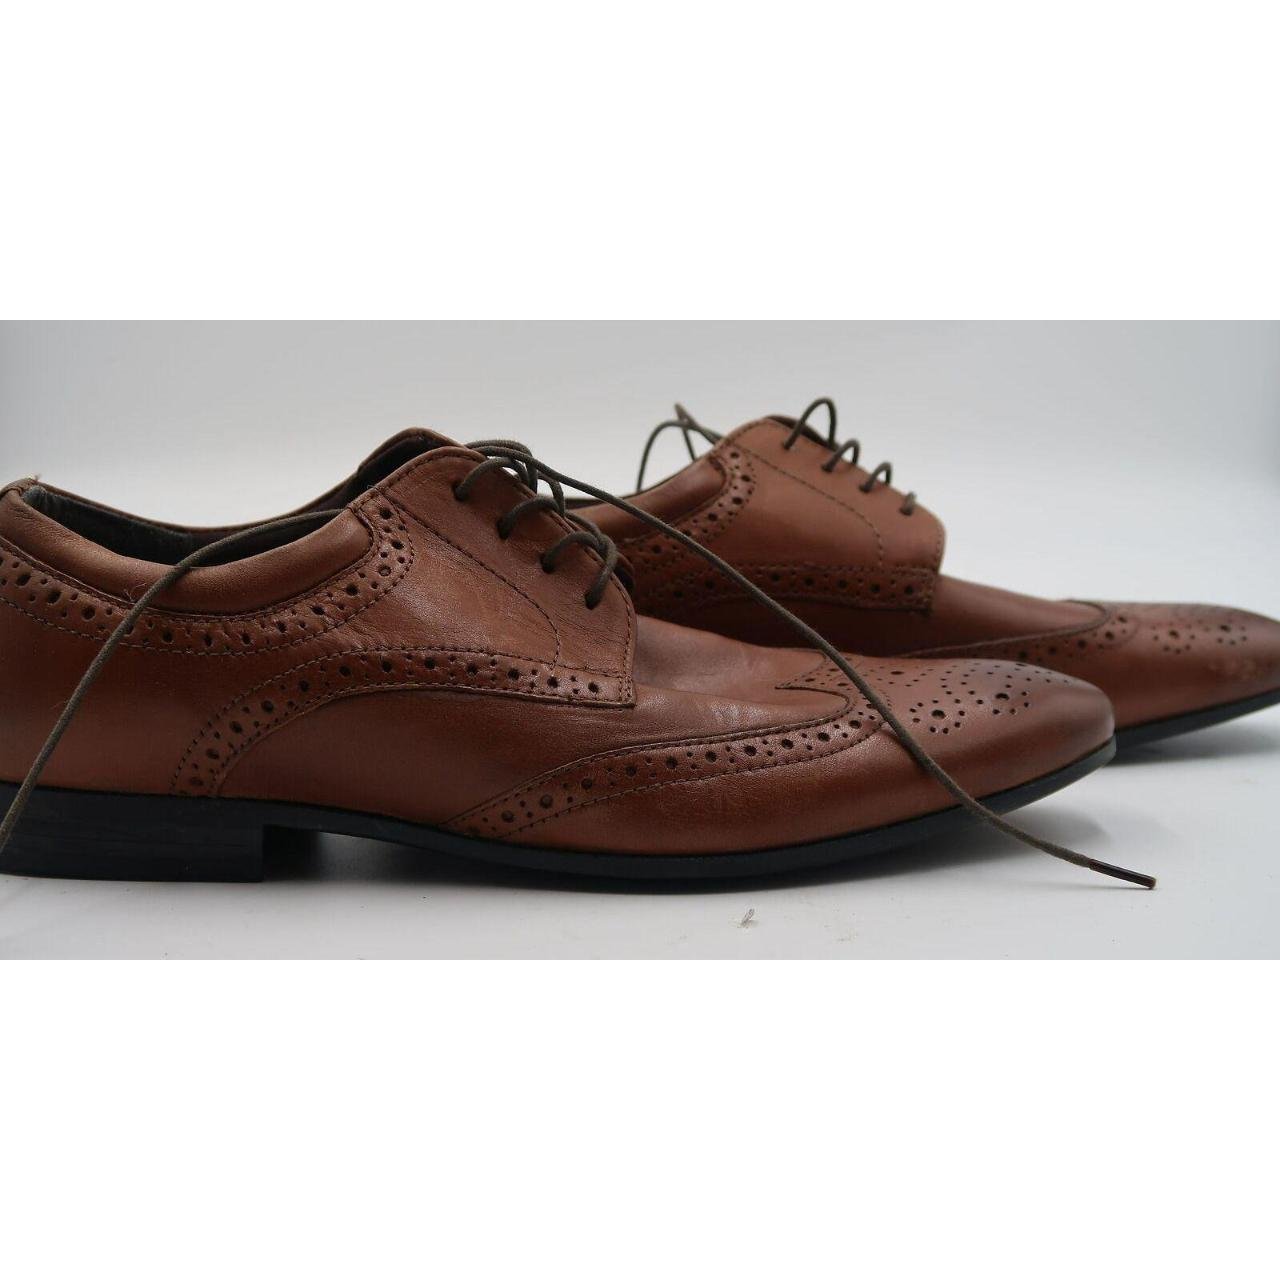 Product Image 1 - KENNETH COLE REACTION DESIGN WINGTIPS